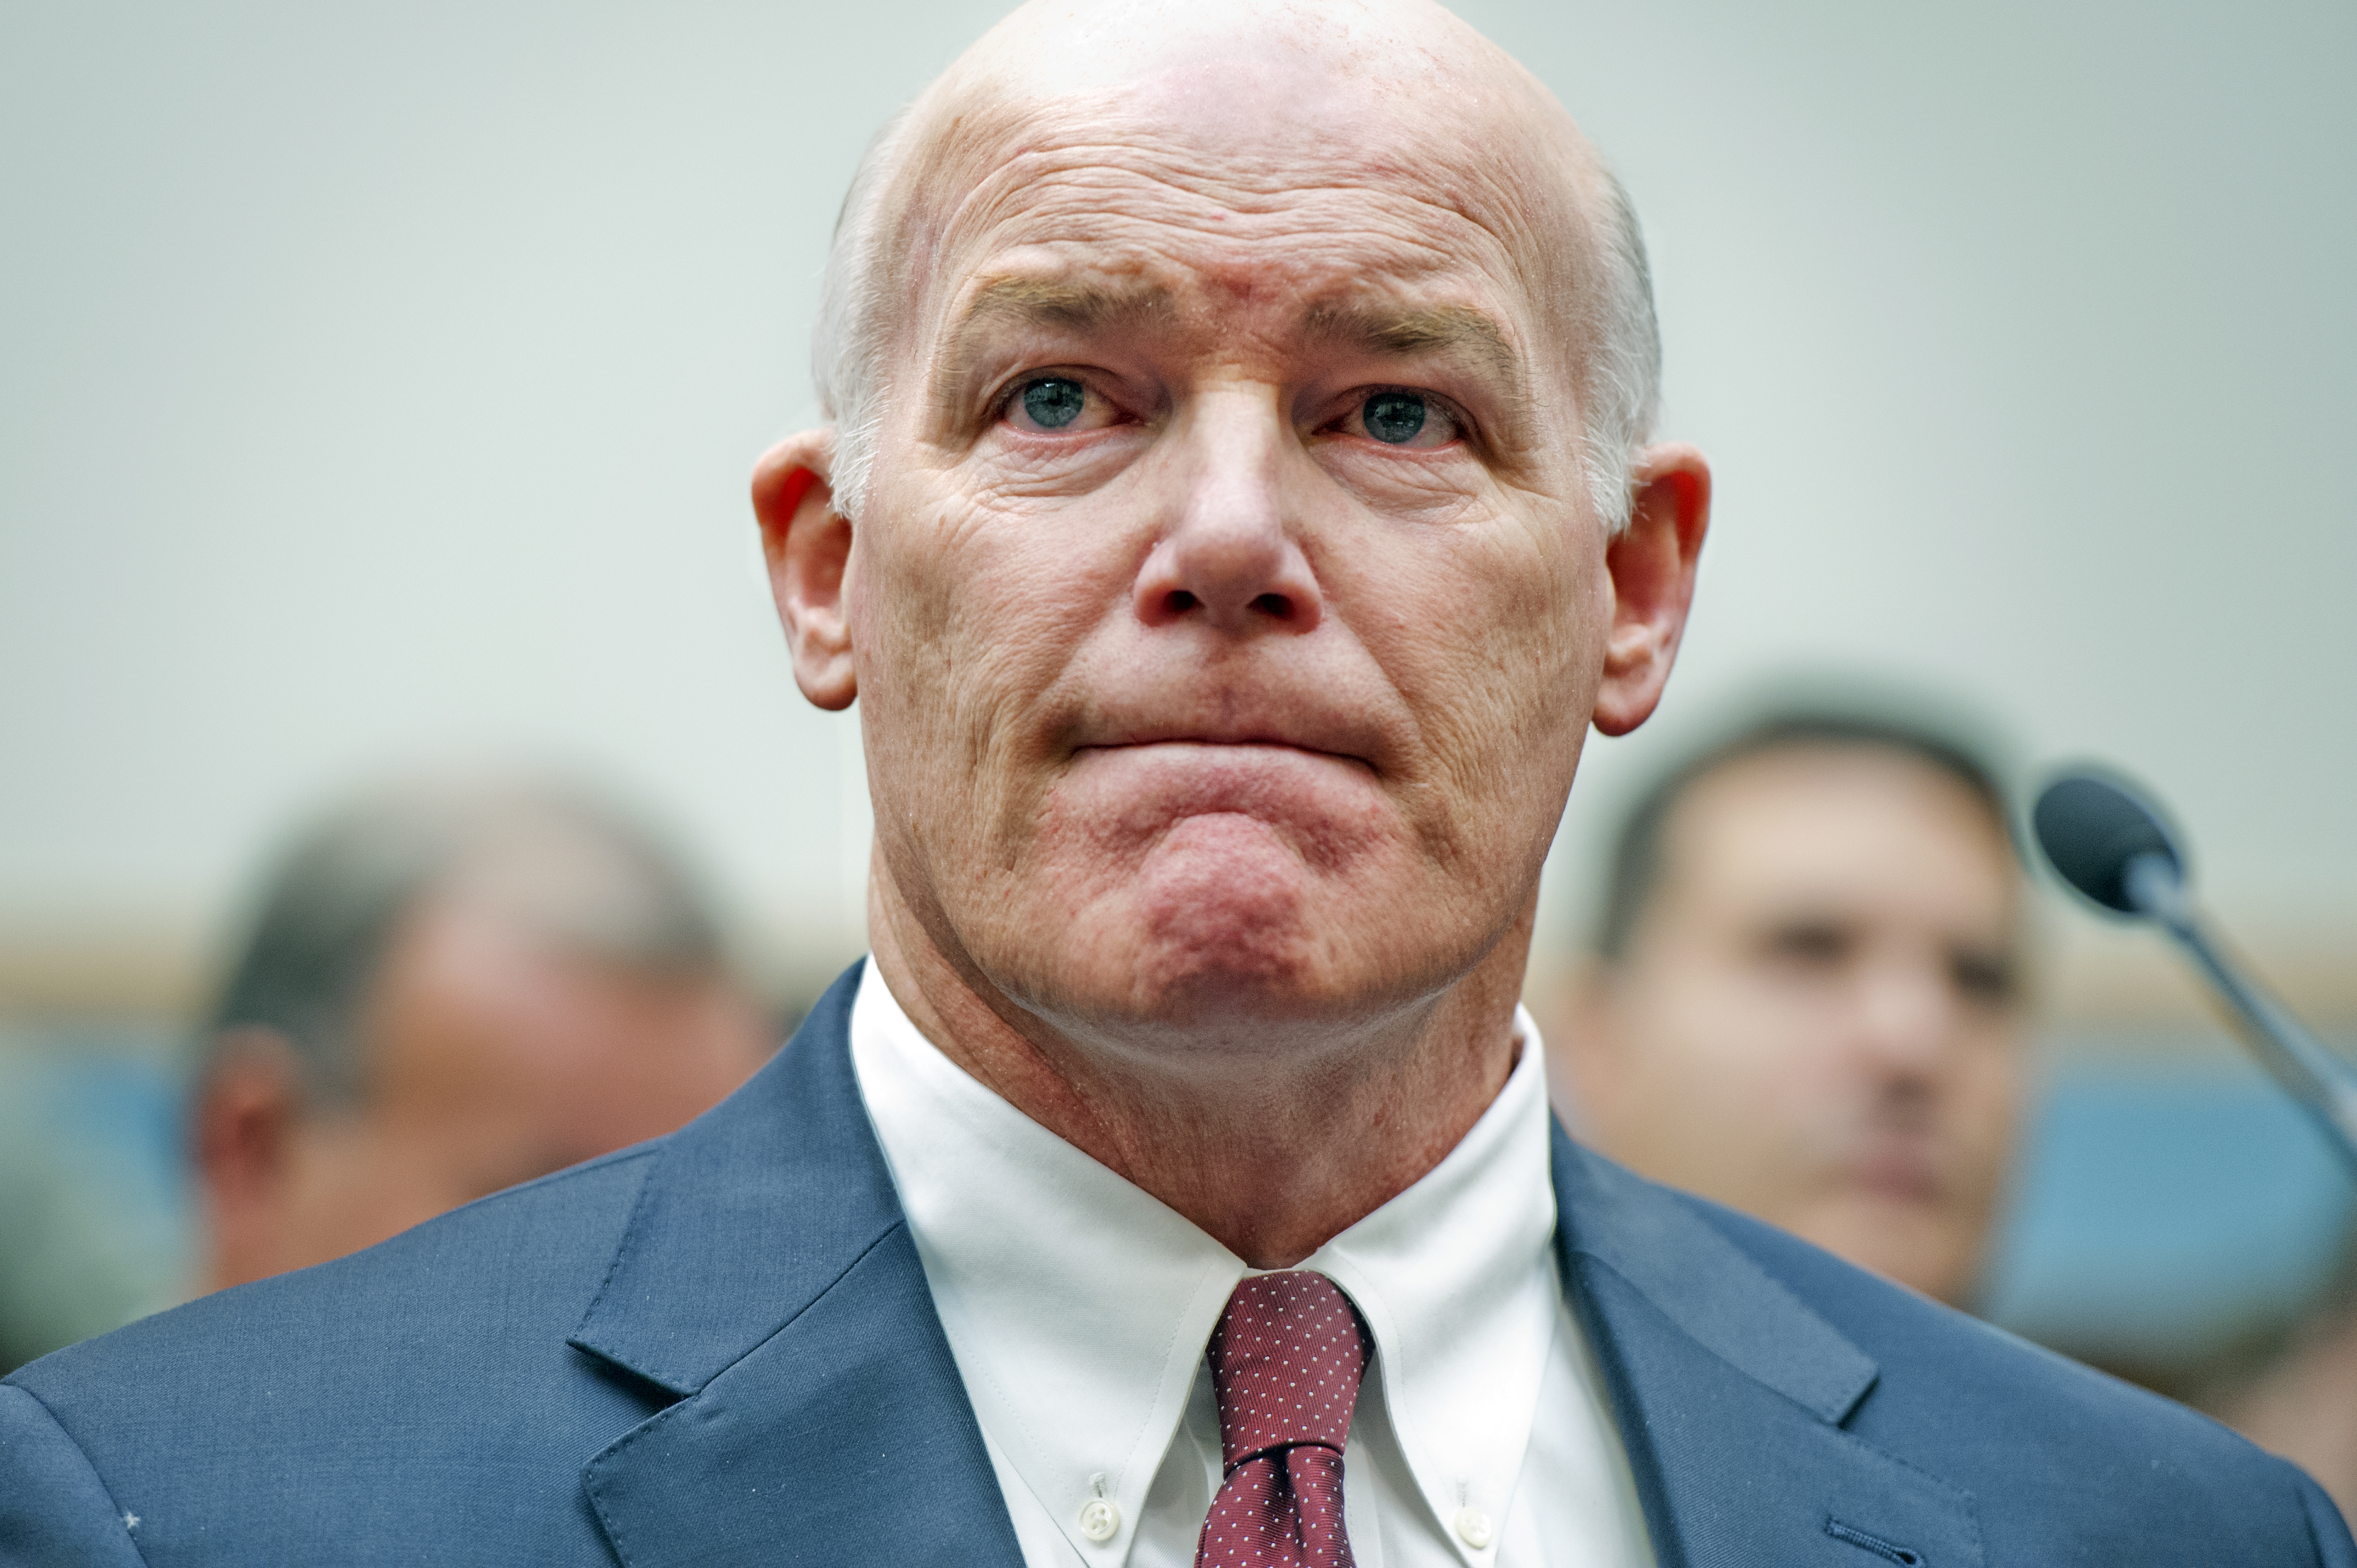 Acting Secret Service Director Joseph Clancy prepares to testify before a House Judiciary Committee hearing on Nov. 19, 2014